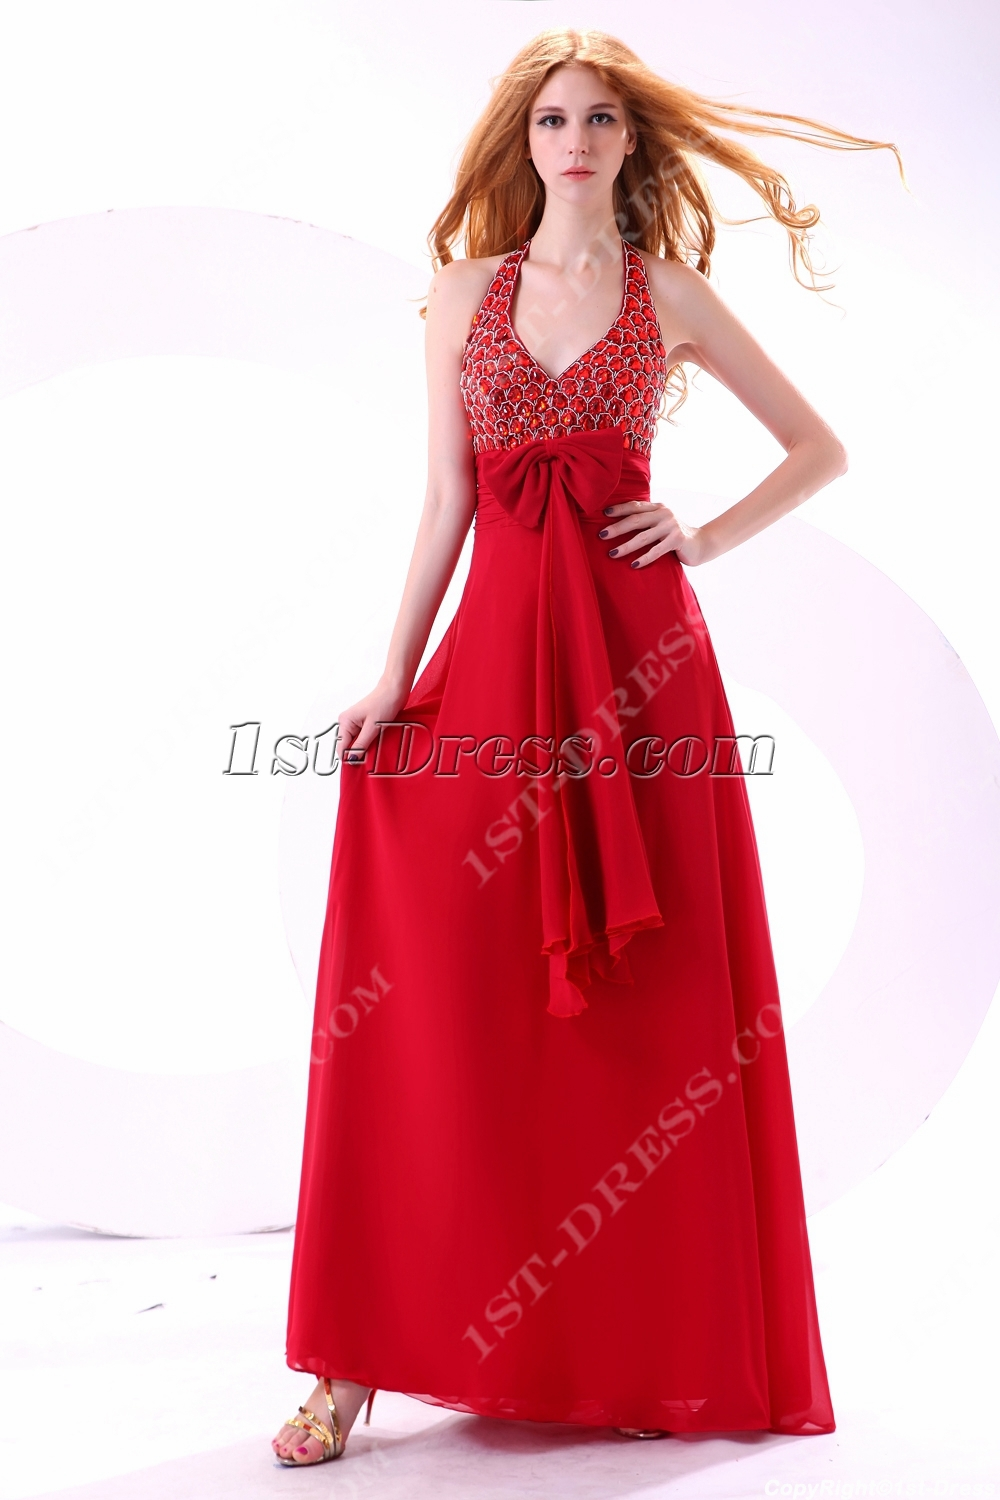 images/201311/big/Luxury-Halter-Maternity-Cocktail-Gown-with-Jewels-3453-b-1-1383993980.jpg